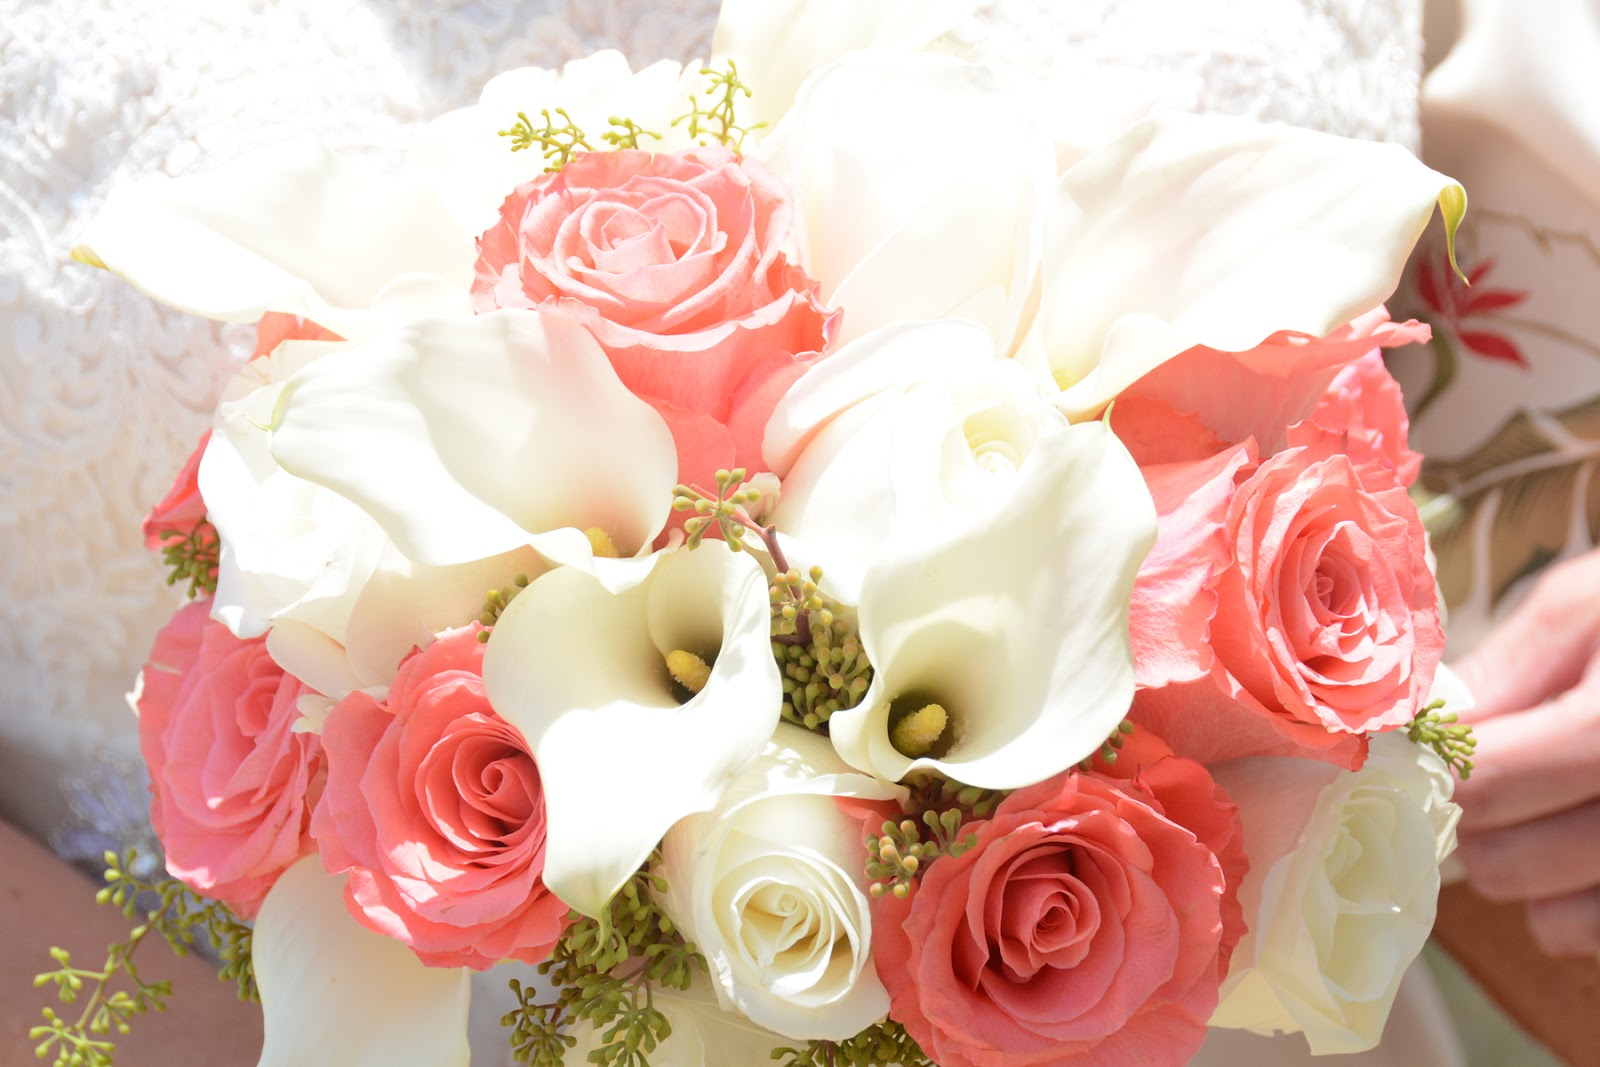 hawaii wedding flowers coral white calla lily rose bouquet. Black Bedroom Furniture Sets. Home Design Ideas